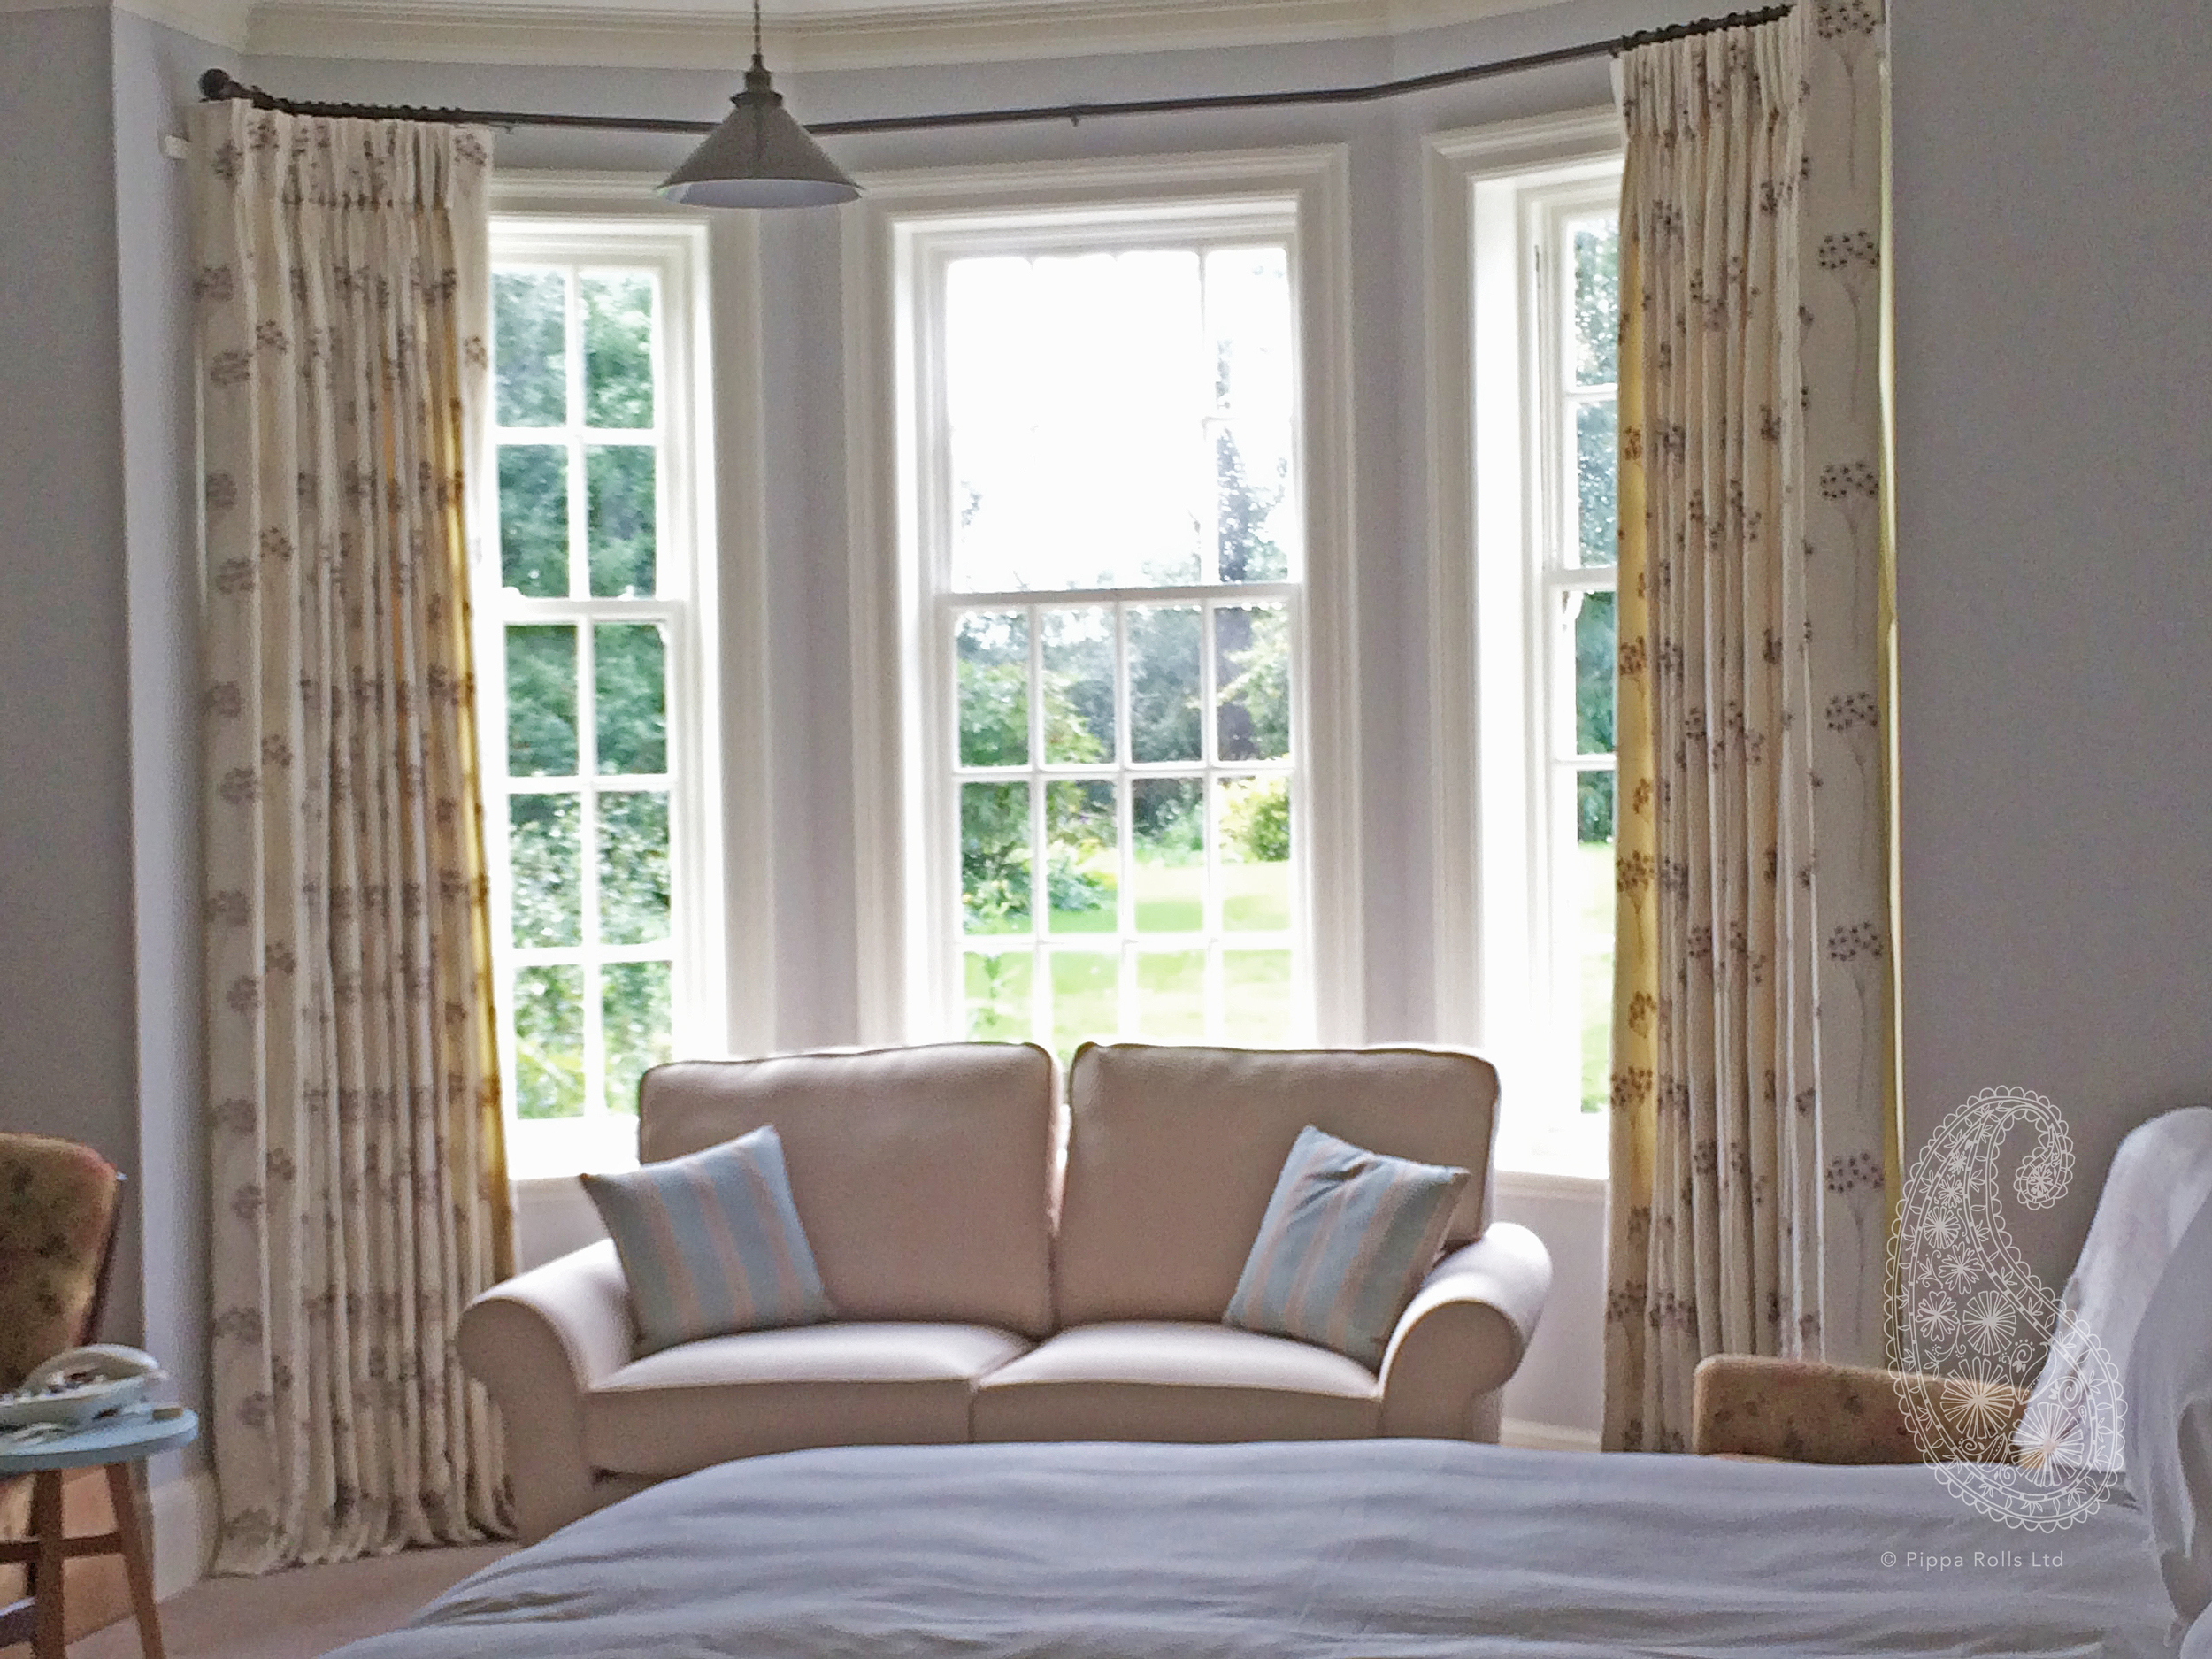 Bay window curtains hung on a bespoke pole by Pippa Rolls Limited jpeg.jpg